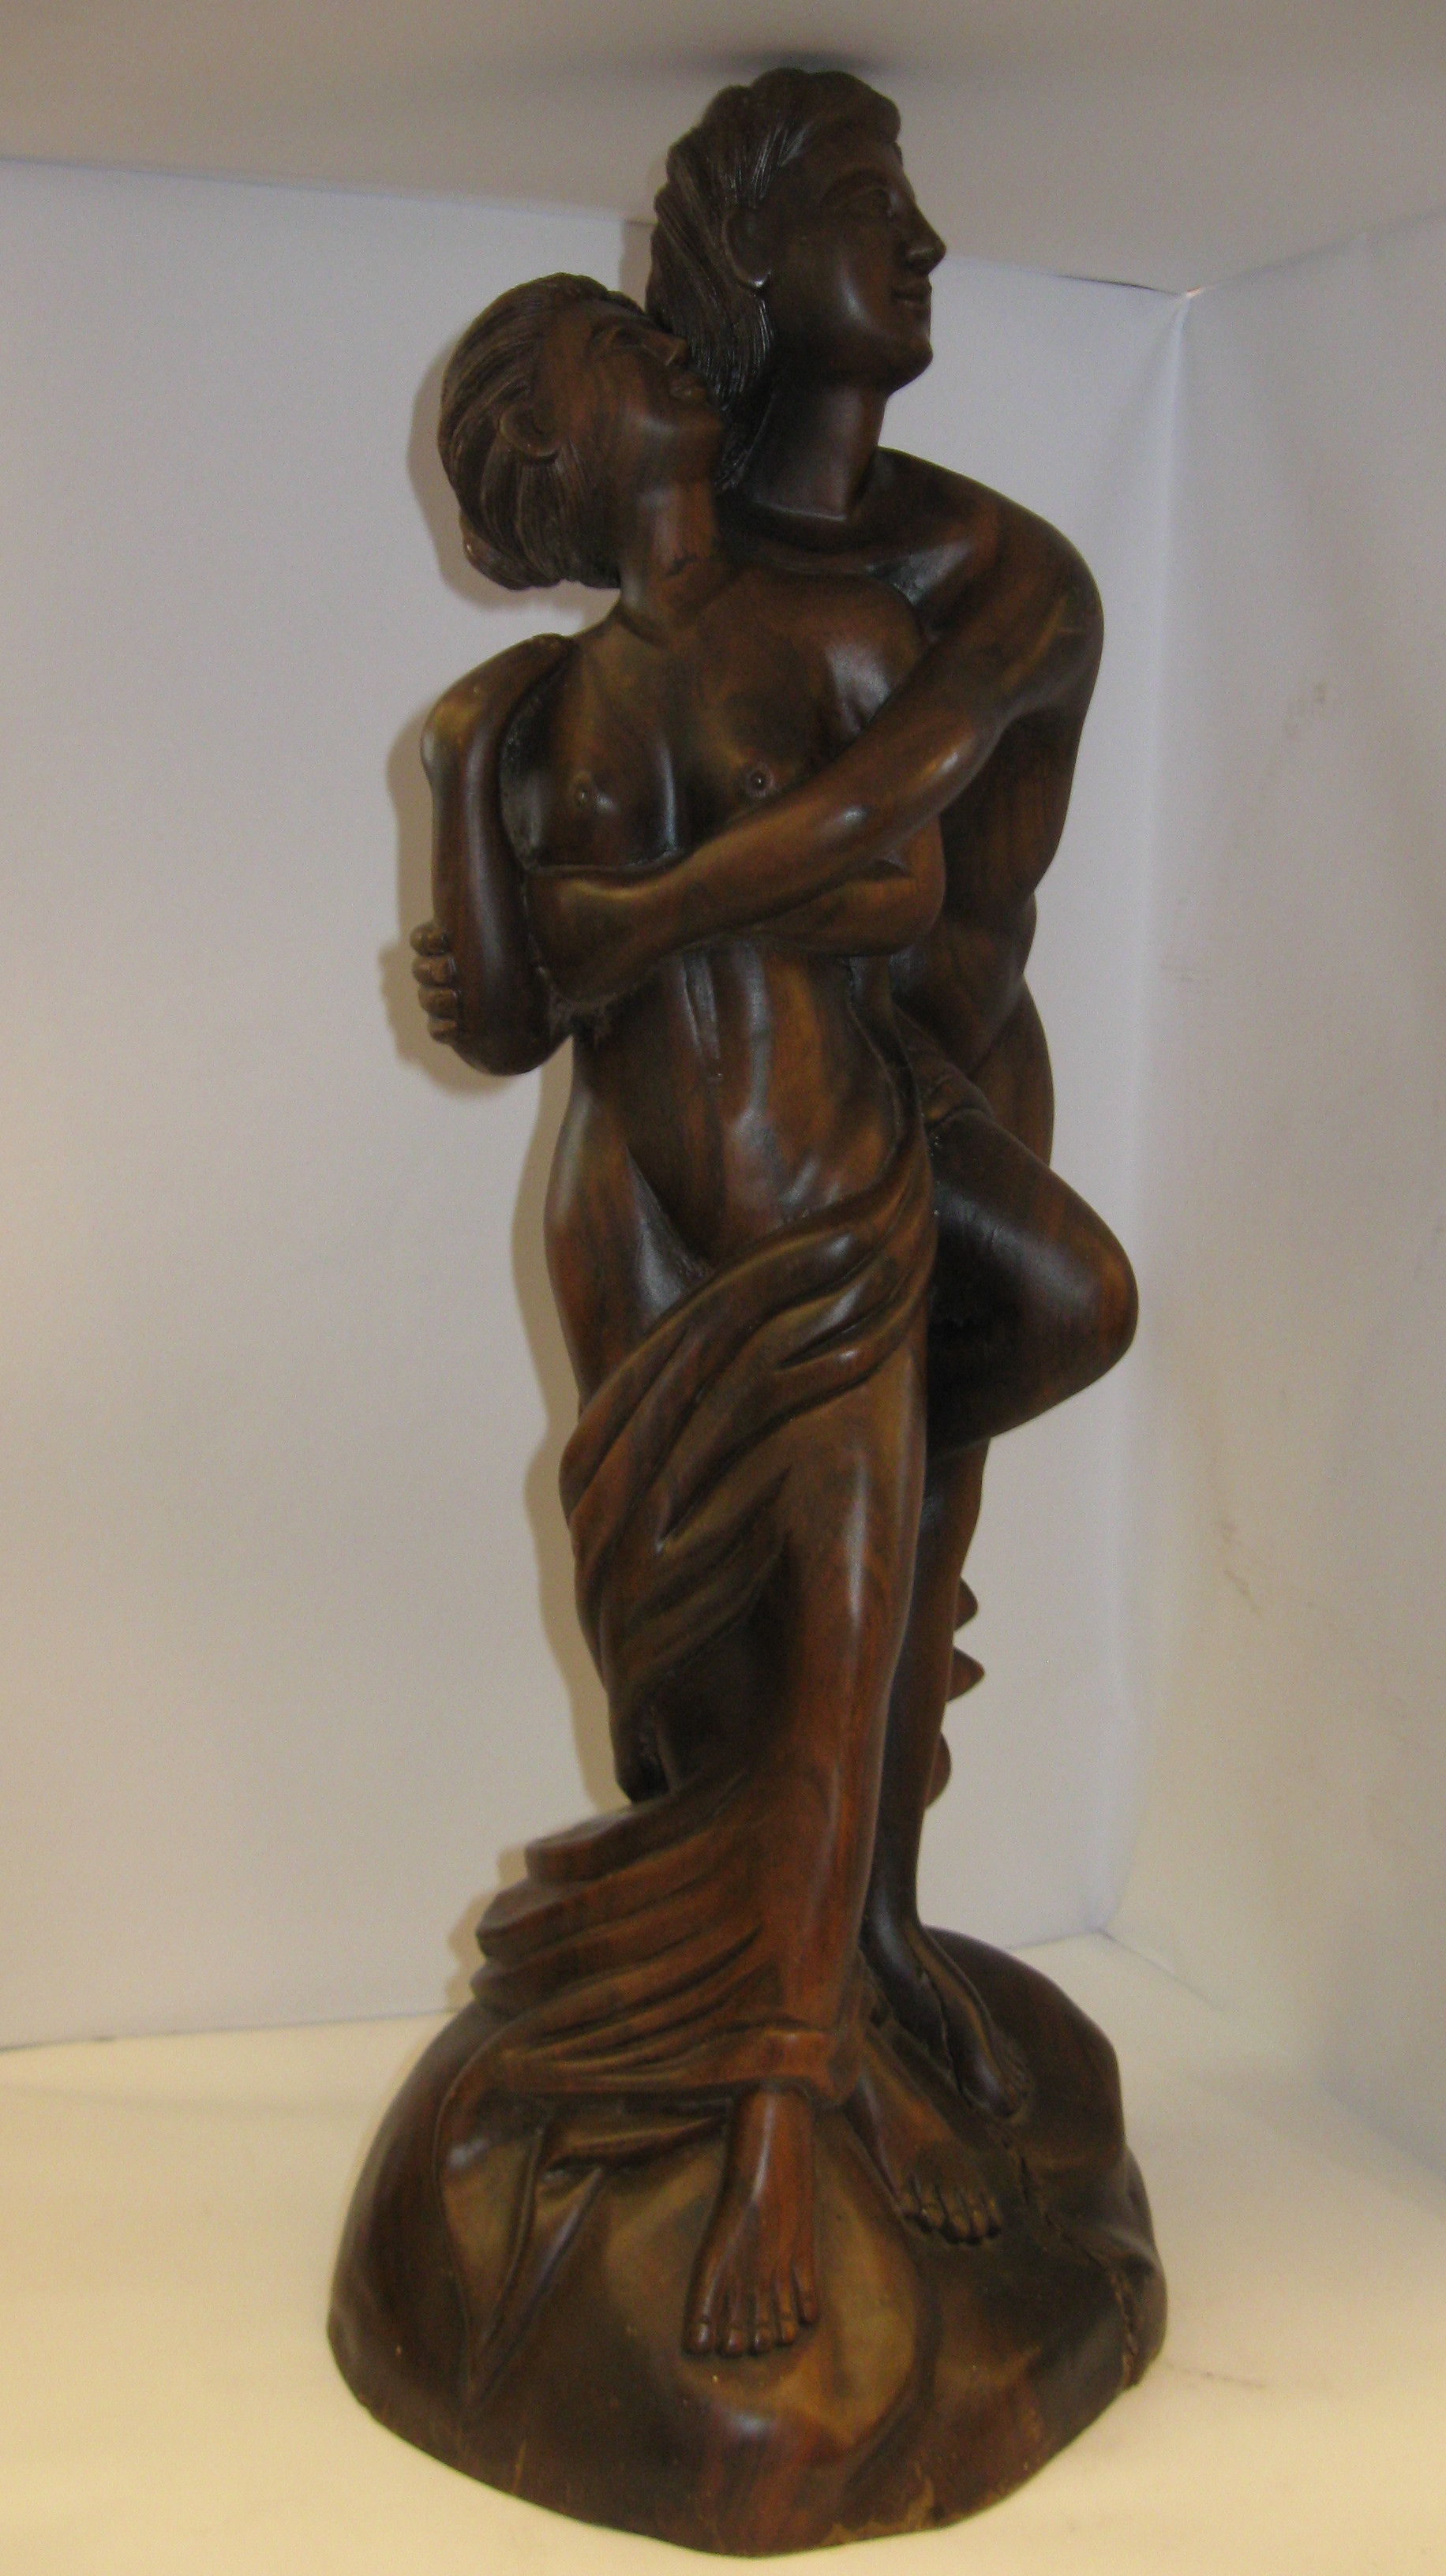 Hand-crafted Wooden Statue of a Couple Embracing - 20